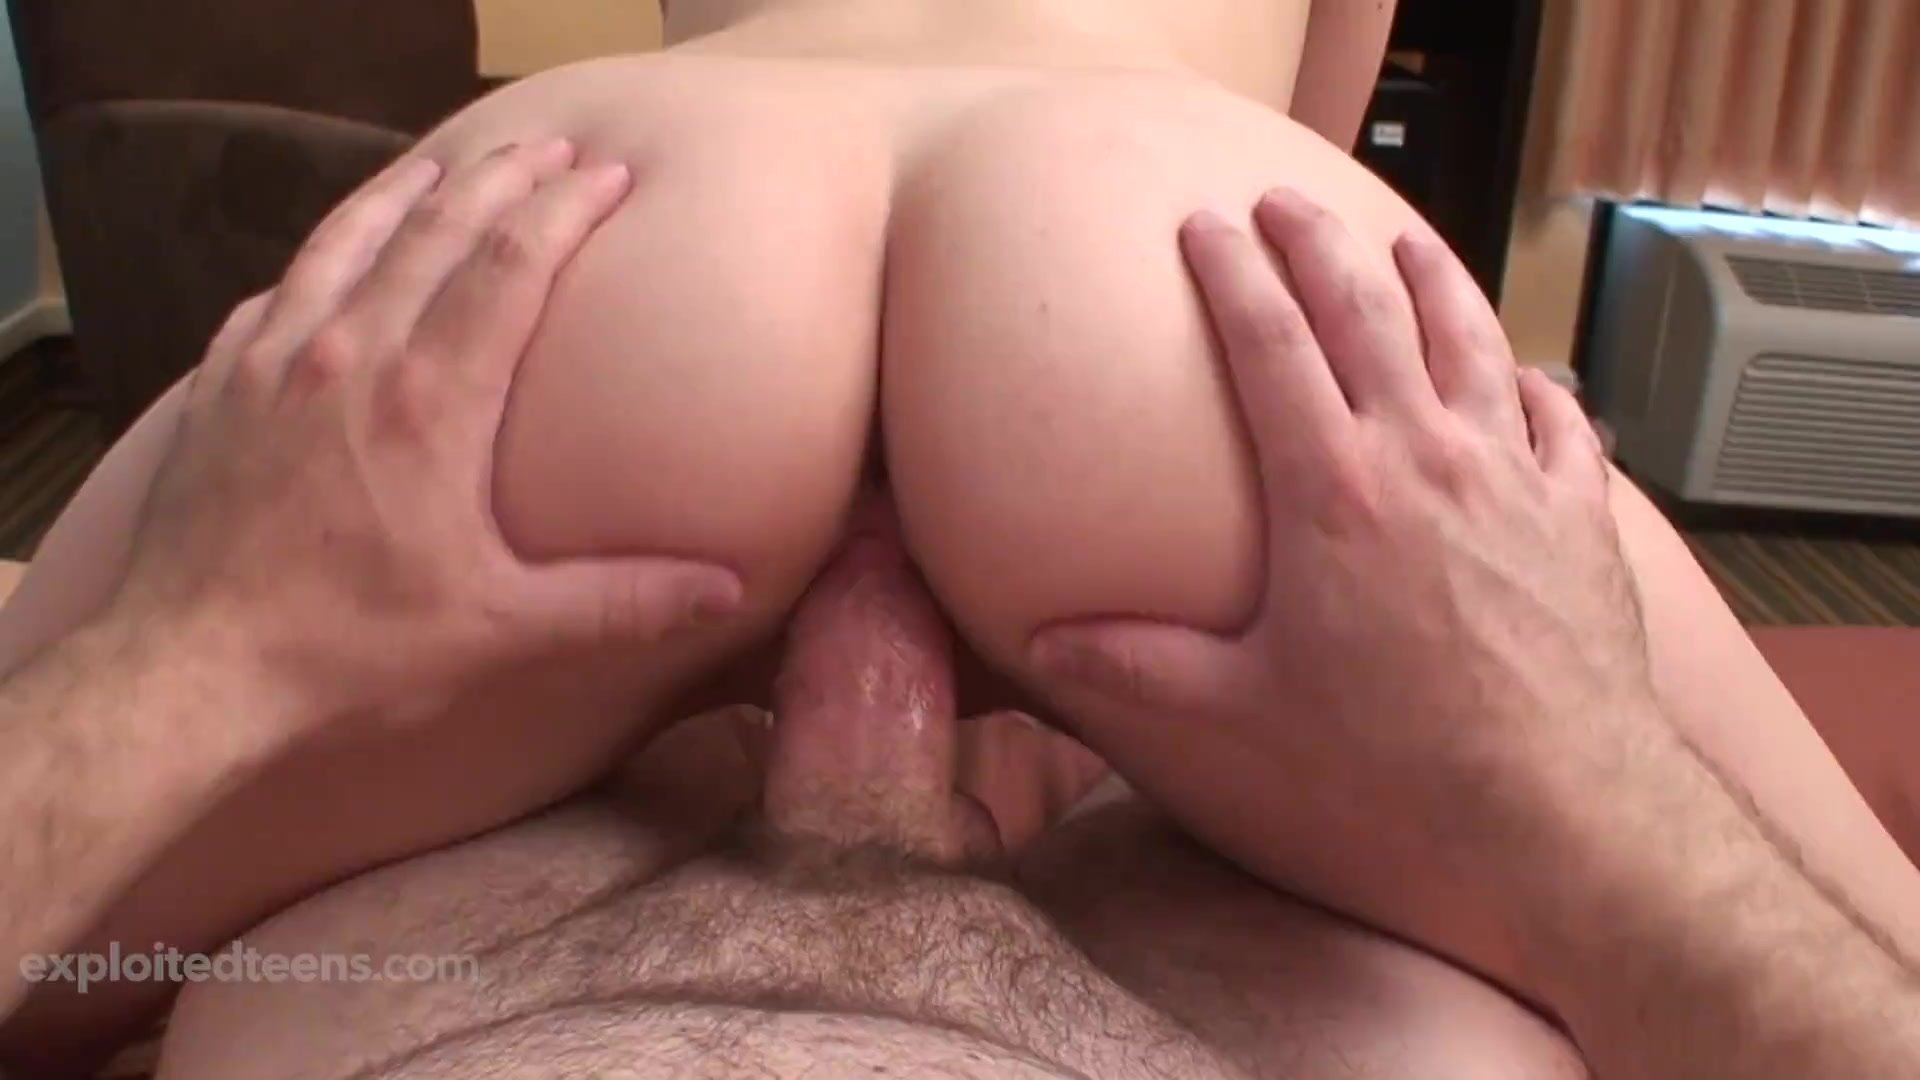 Slim Thick Teen With a Fat Ass Gets Every Inch of Her Face Covered with Cum